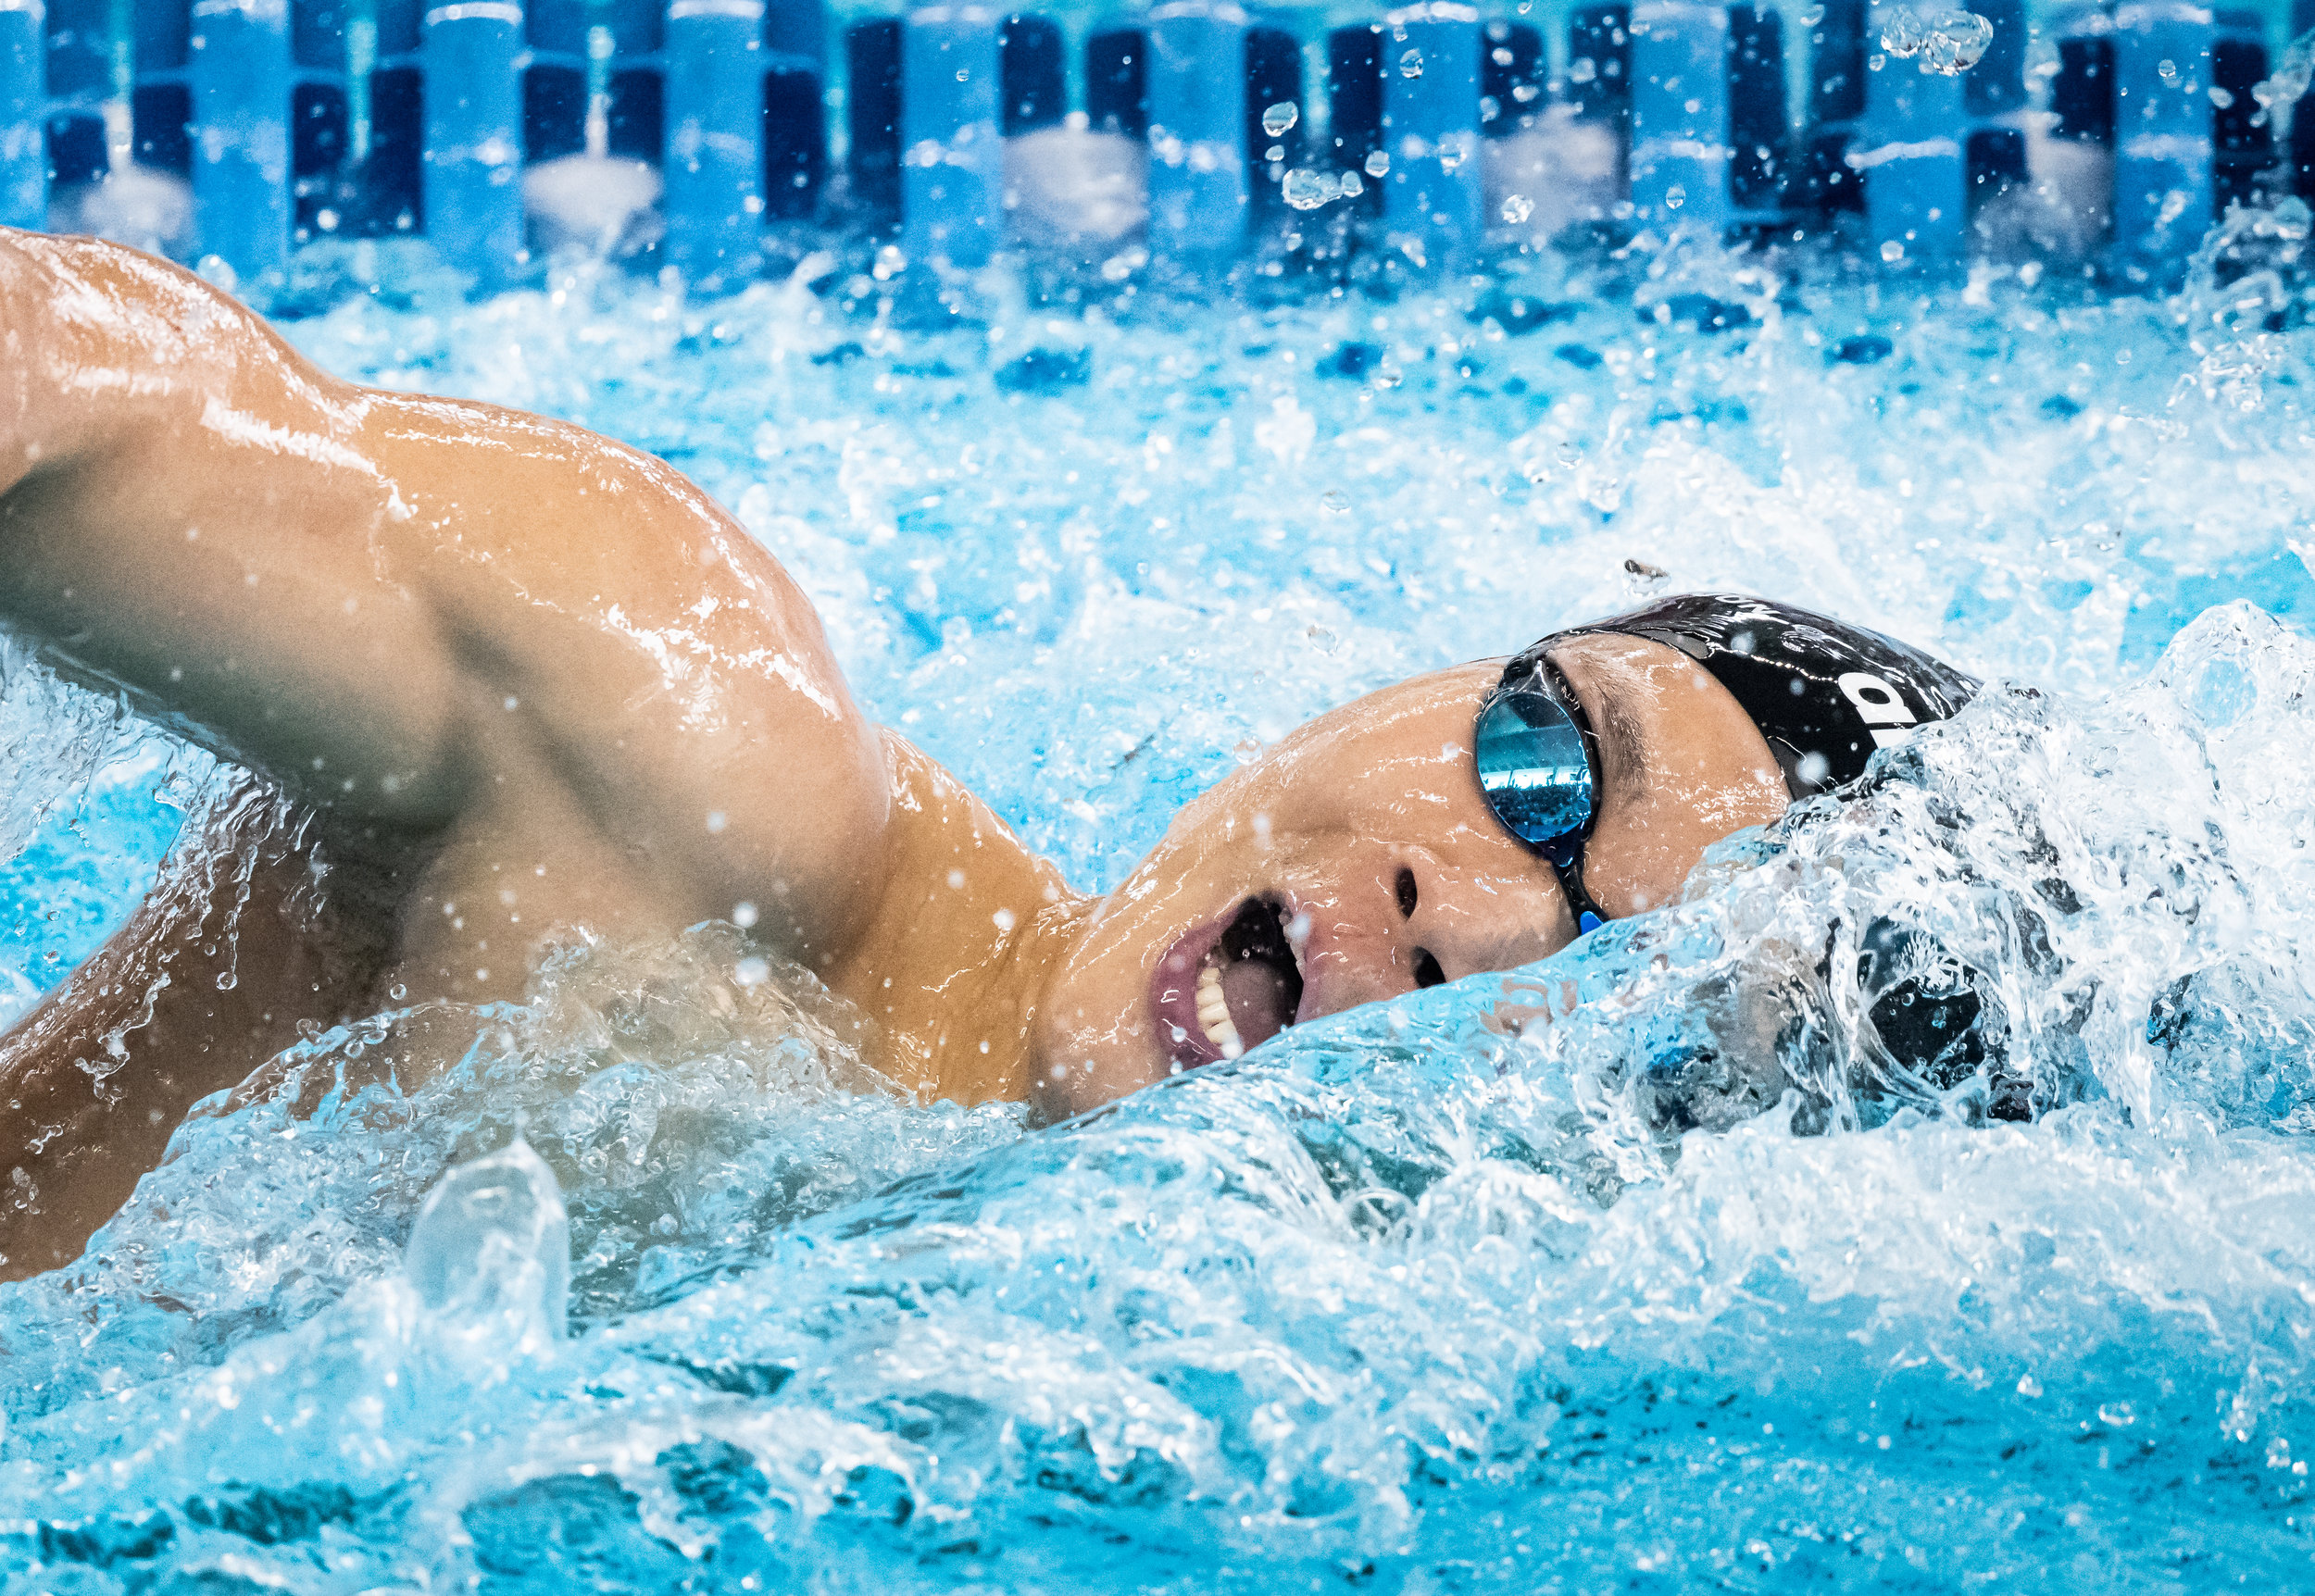 A Singaporean swimmer during the 400m Individual Medley Relay of the Asian Games at the GBK Aquatic Centre.